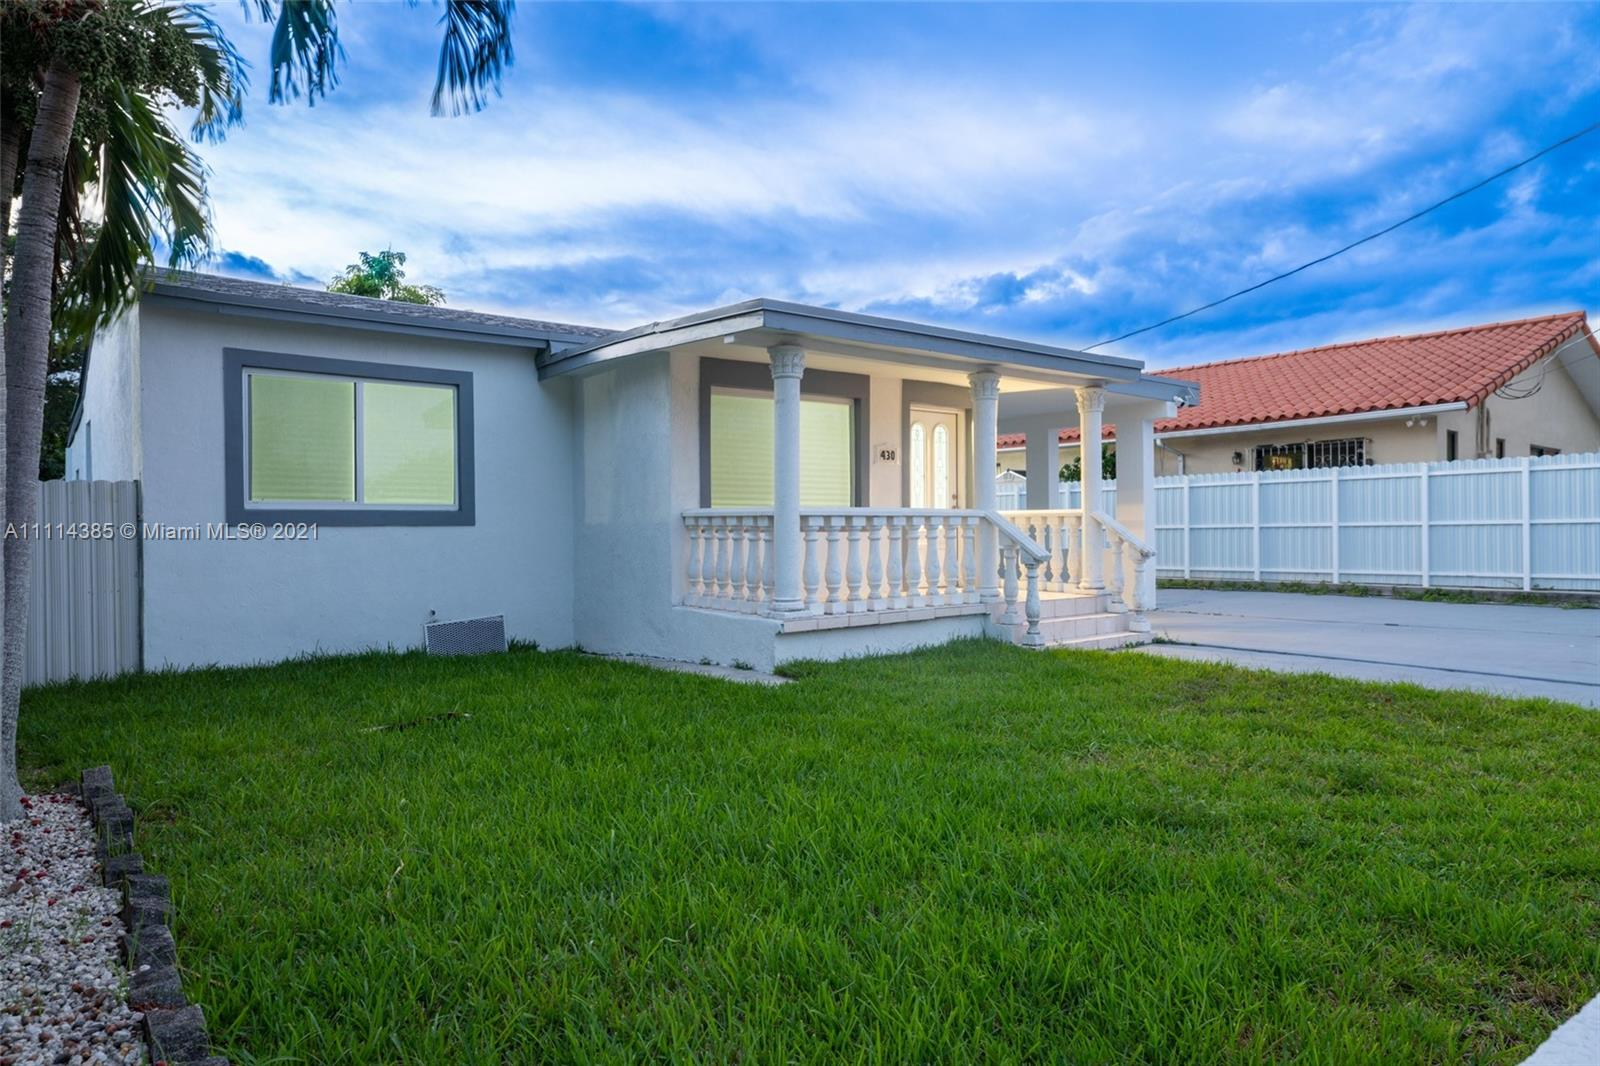 430 NW 51st Ave, Miami, Florida 33126, ,Residential Income,For Sale,51st Ave,A11114385